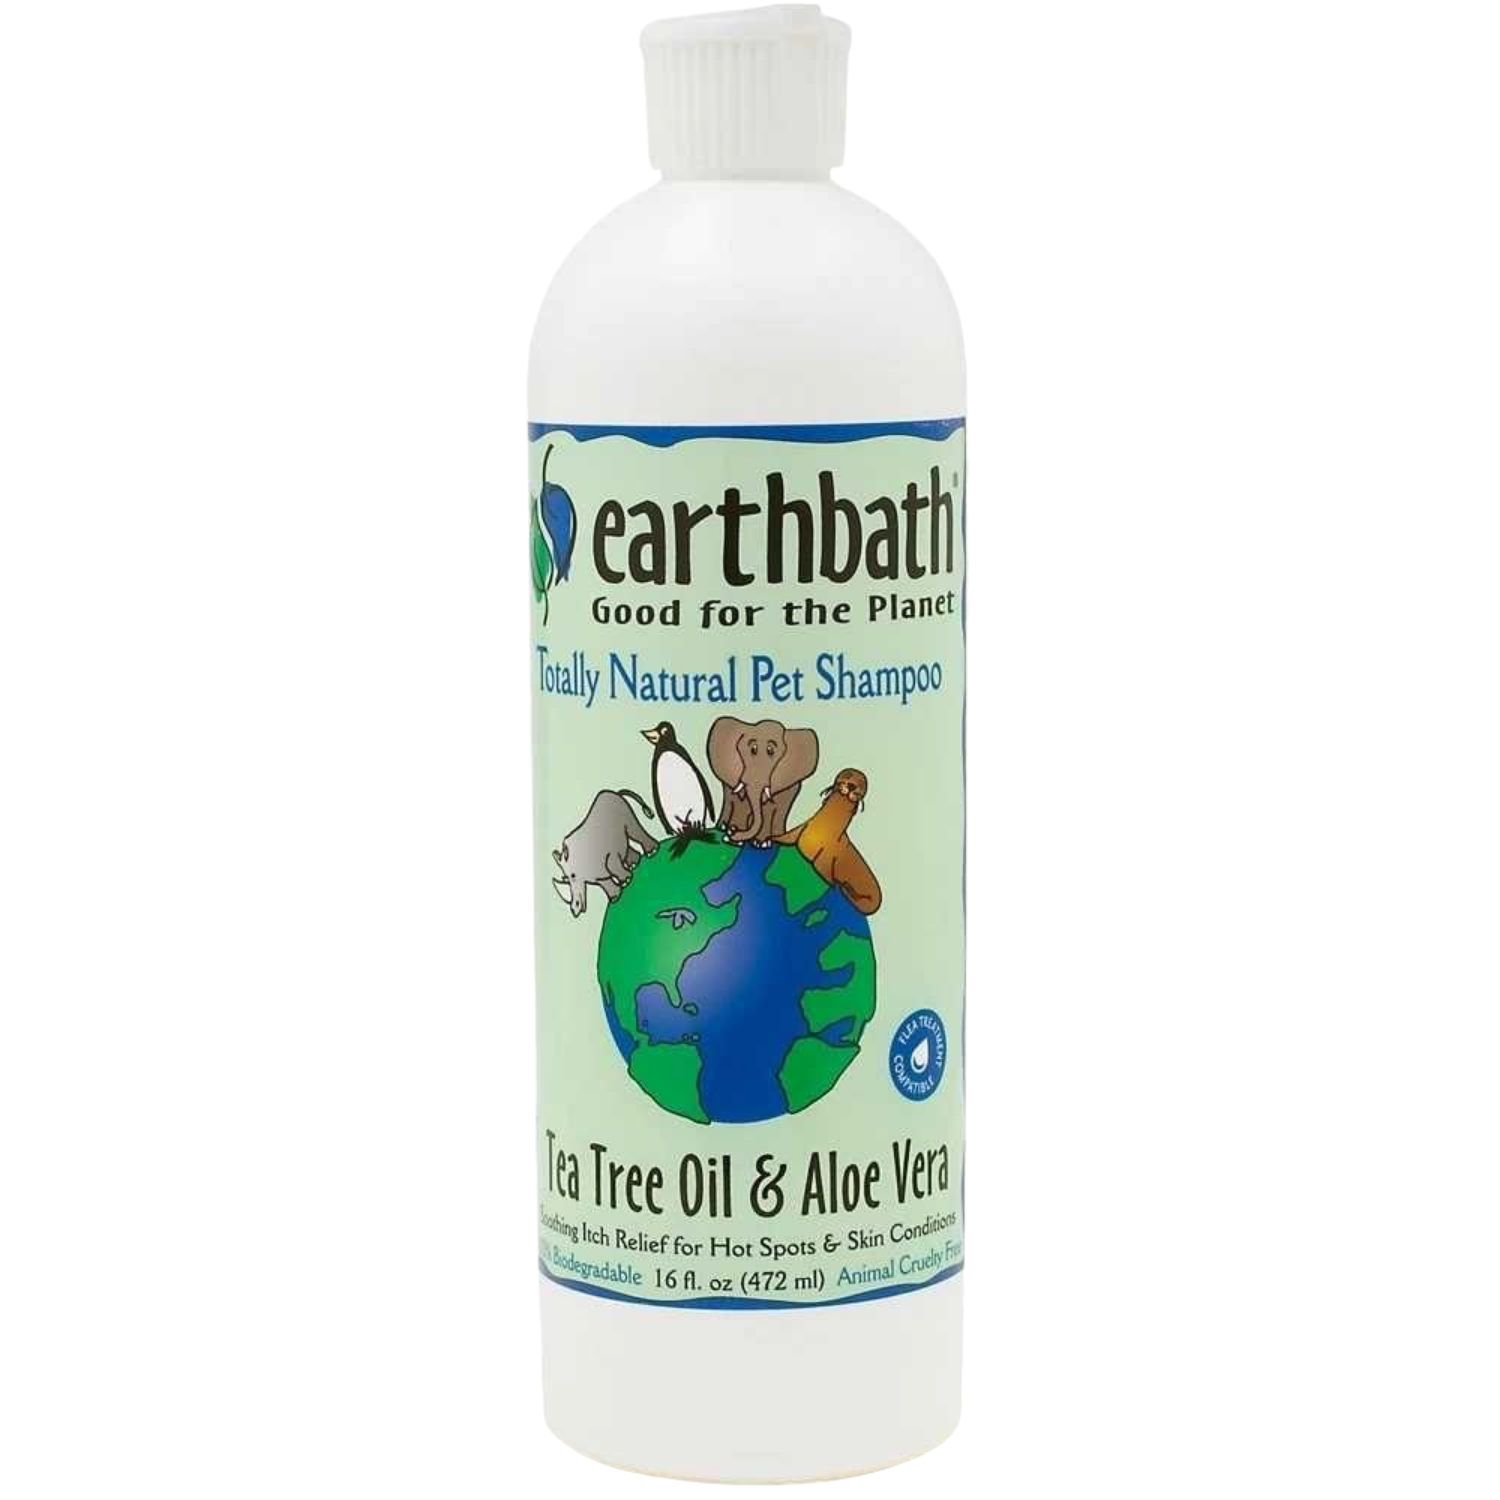 Earthbath Hot Spot Relief Shampoo (Tea Tree Oil & Aloe Vera)